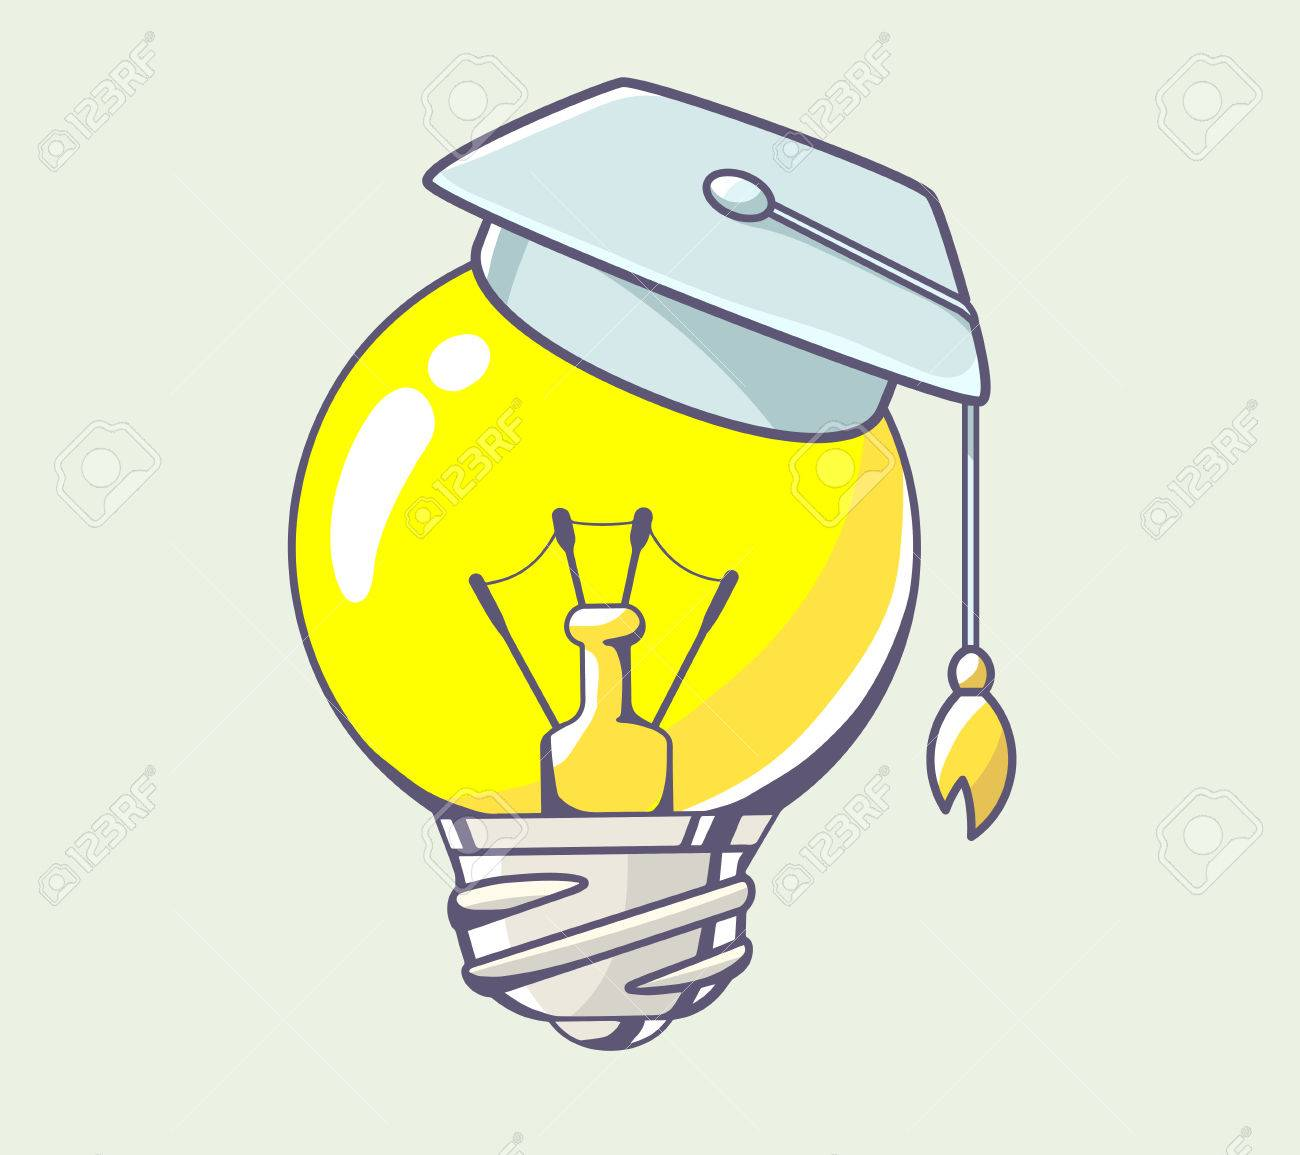 Pics photos how to draw a graduation hat - Vector Illustration Of Yellow Lightbulb With Graduation Cap On Color Background Hand Draw Line Art